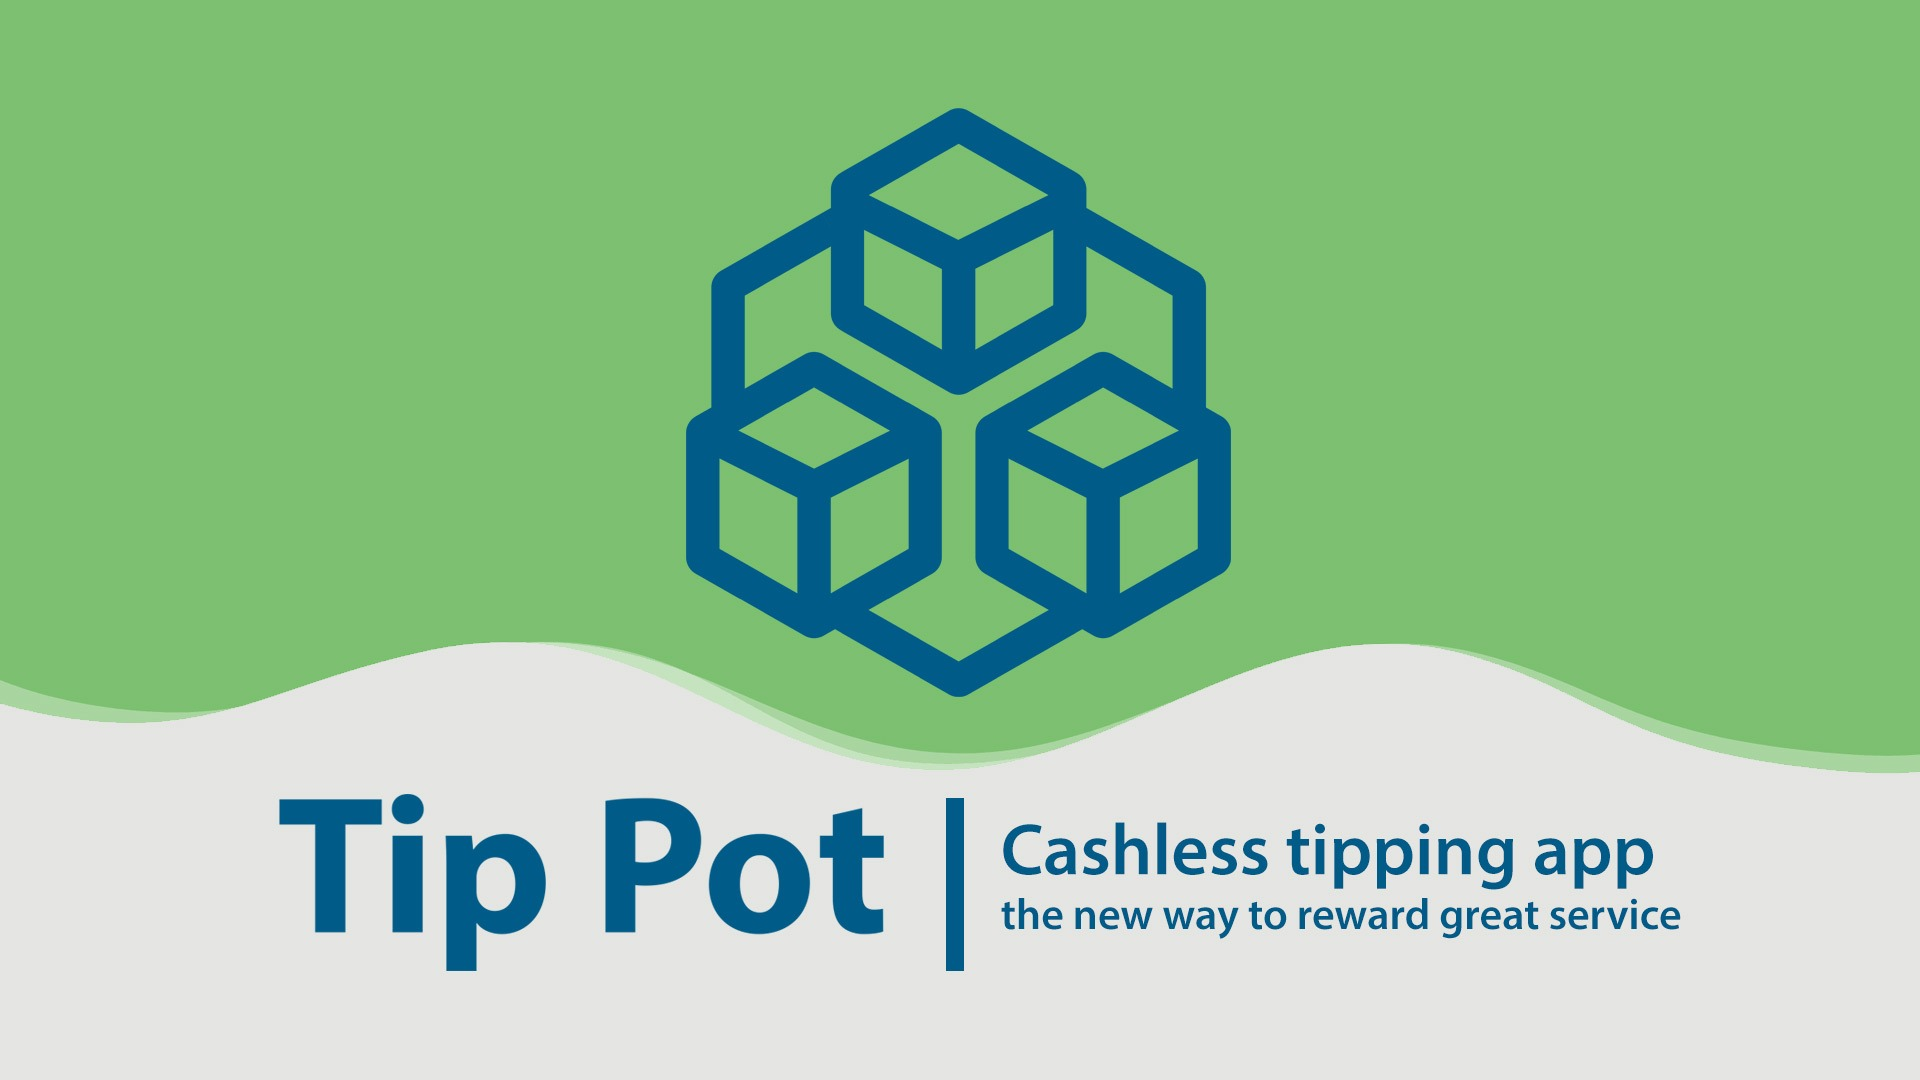 How to Use Tip Pot the Cashless tipping app video